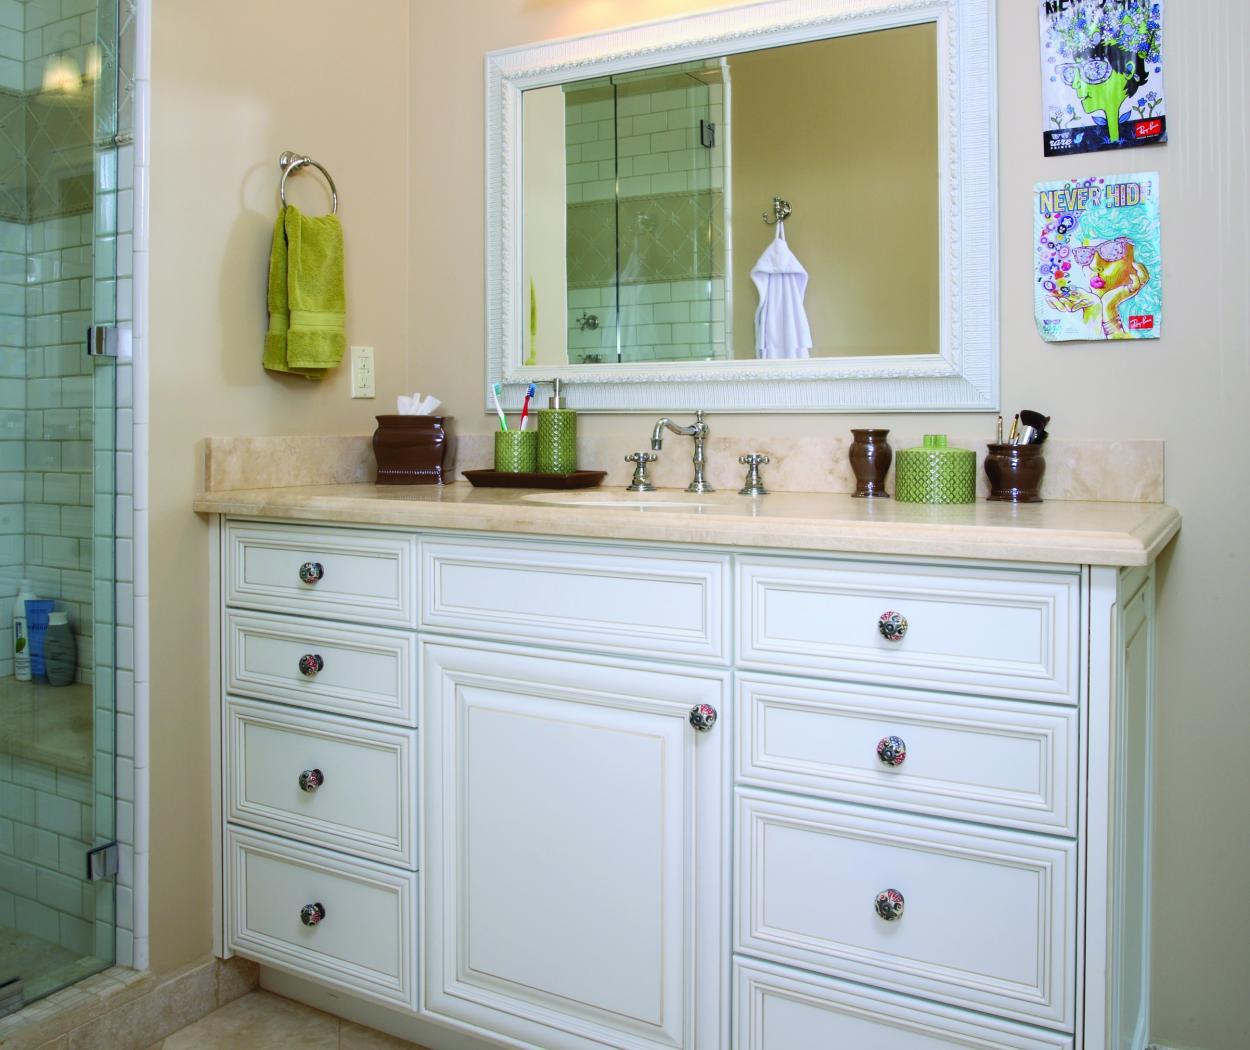 Off White Transitional Bathroom Vanity with a Beautiful Countertop and Decorative Knobs